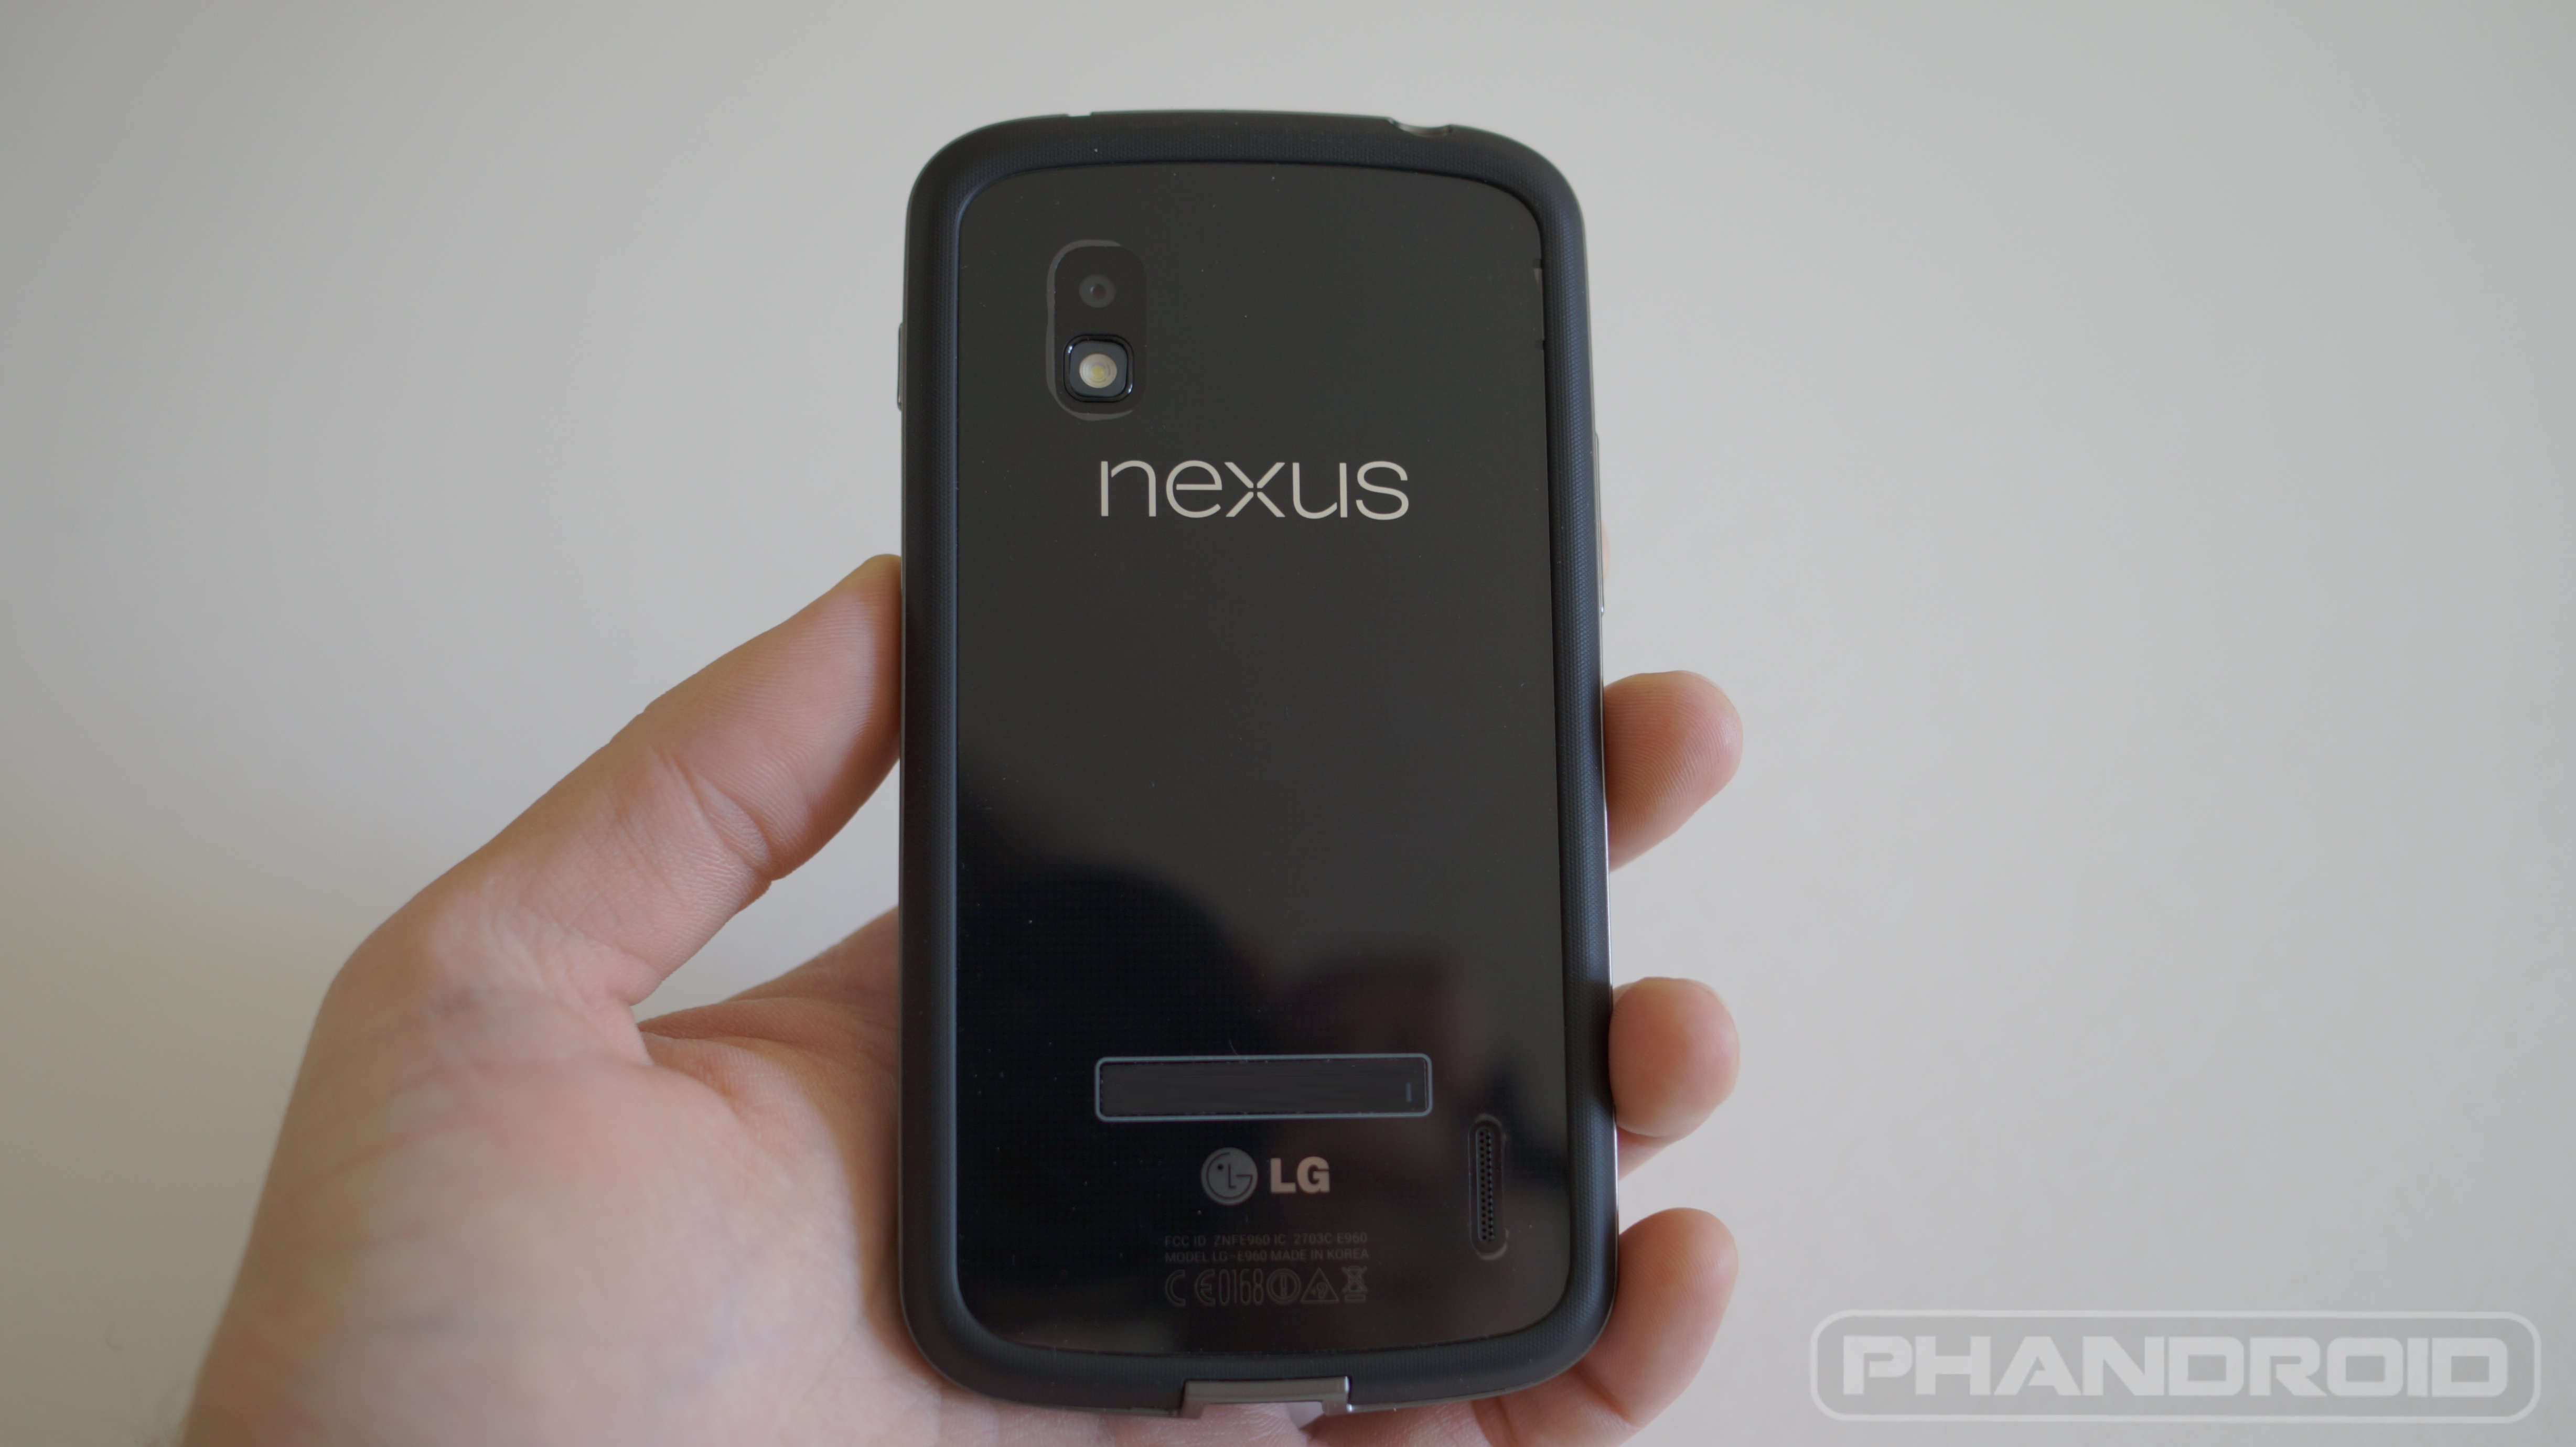 When Will The Nexus 4 Bumper Be Back In Stock